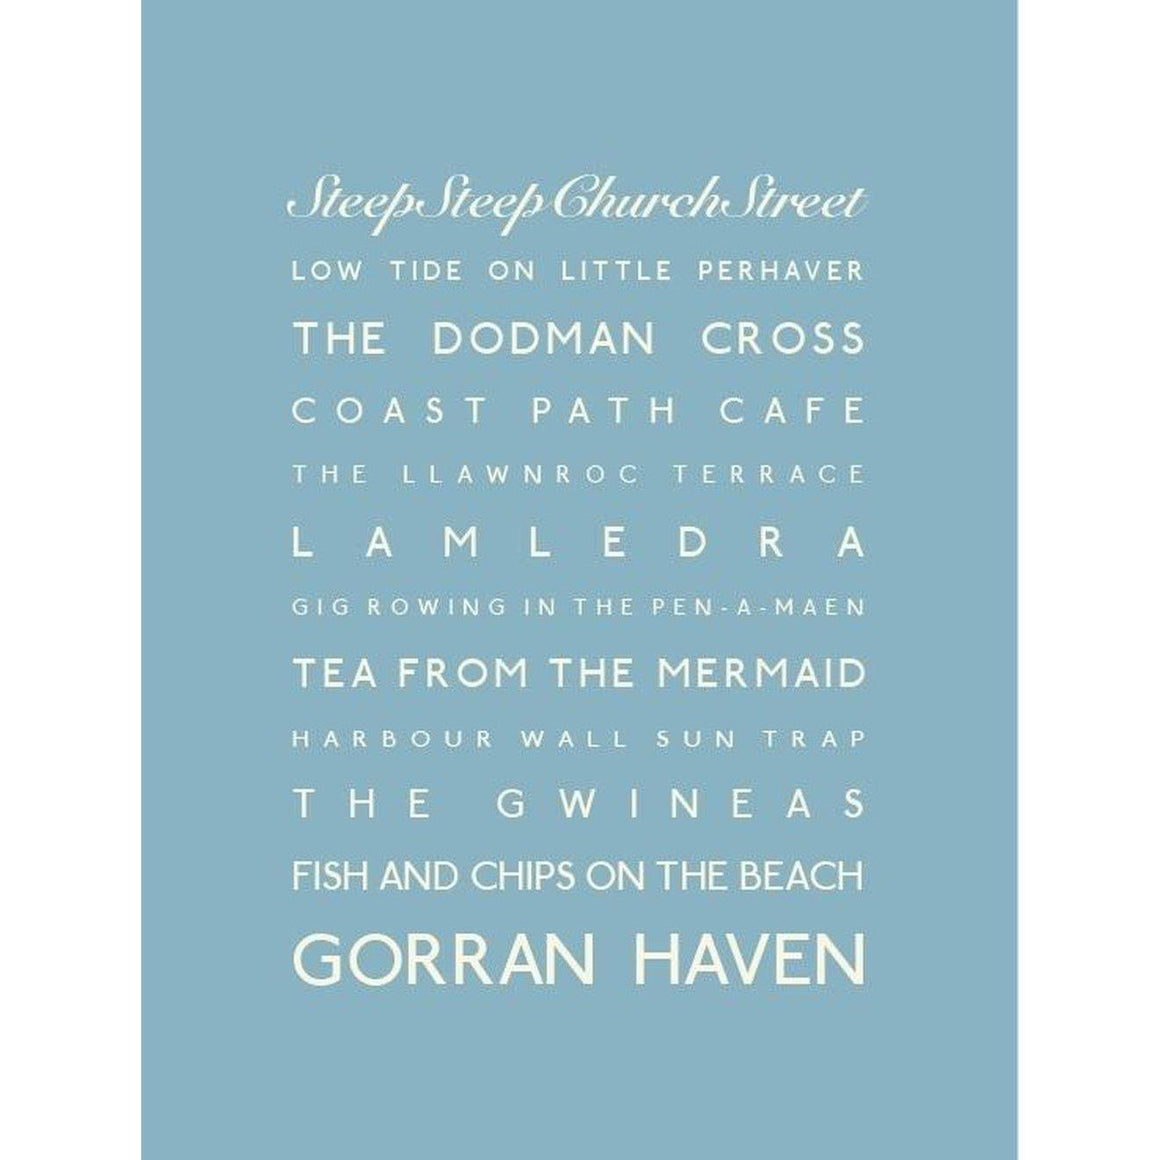 Gorran Haven Typographic Travel Print/Poster Seaside Art by SeaKisses